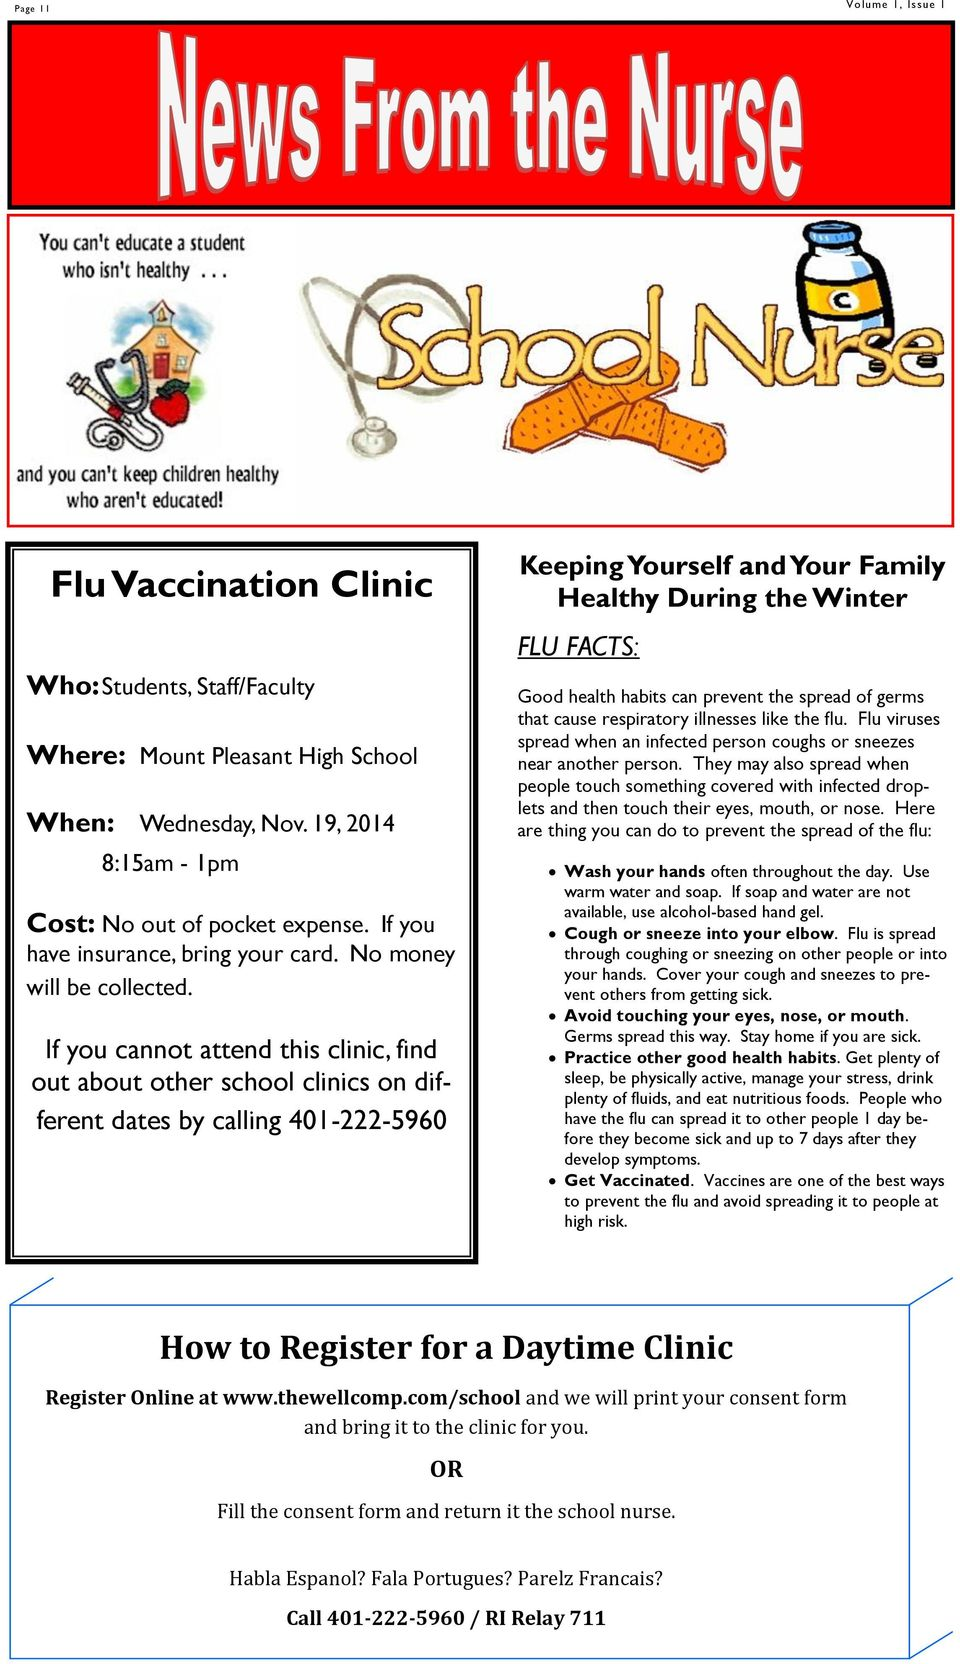 If you cannot attend this clinic, find out about other school clinics on different dates by calling 401-222-5960 Keeping Yourself and Your Family Healthy During the Winter FLU FACTS: Good health